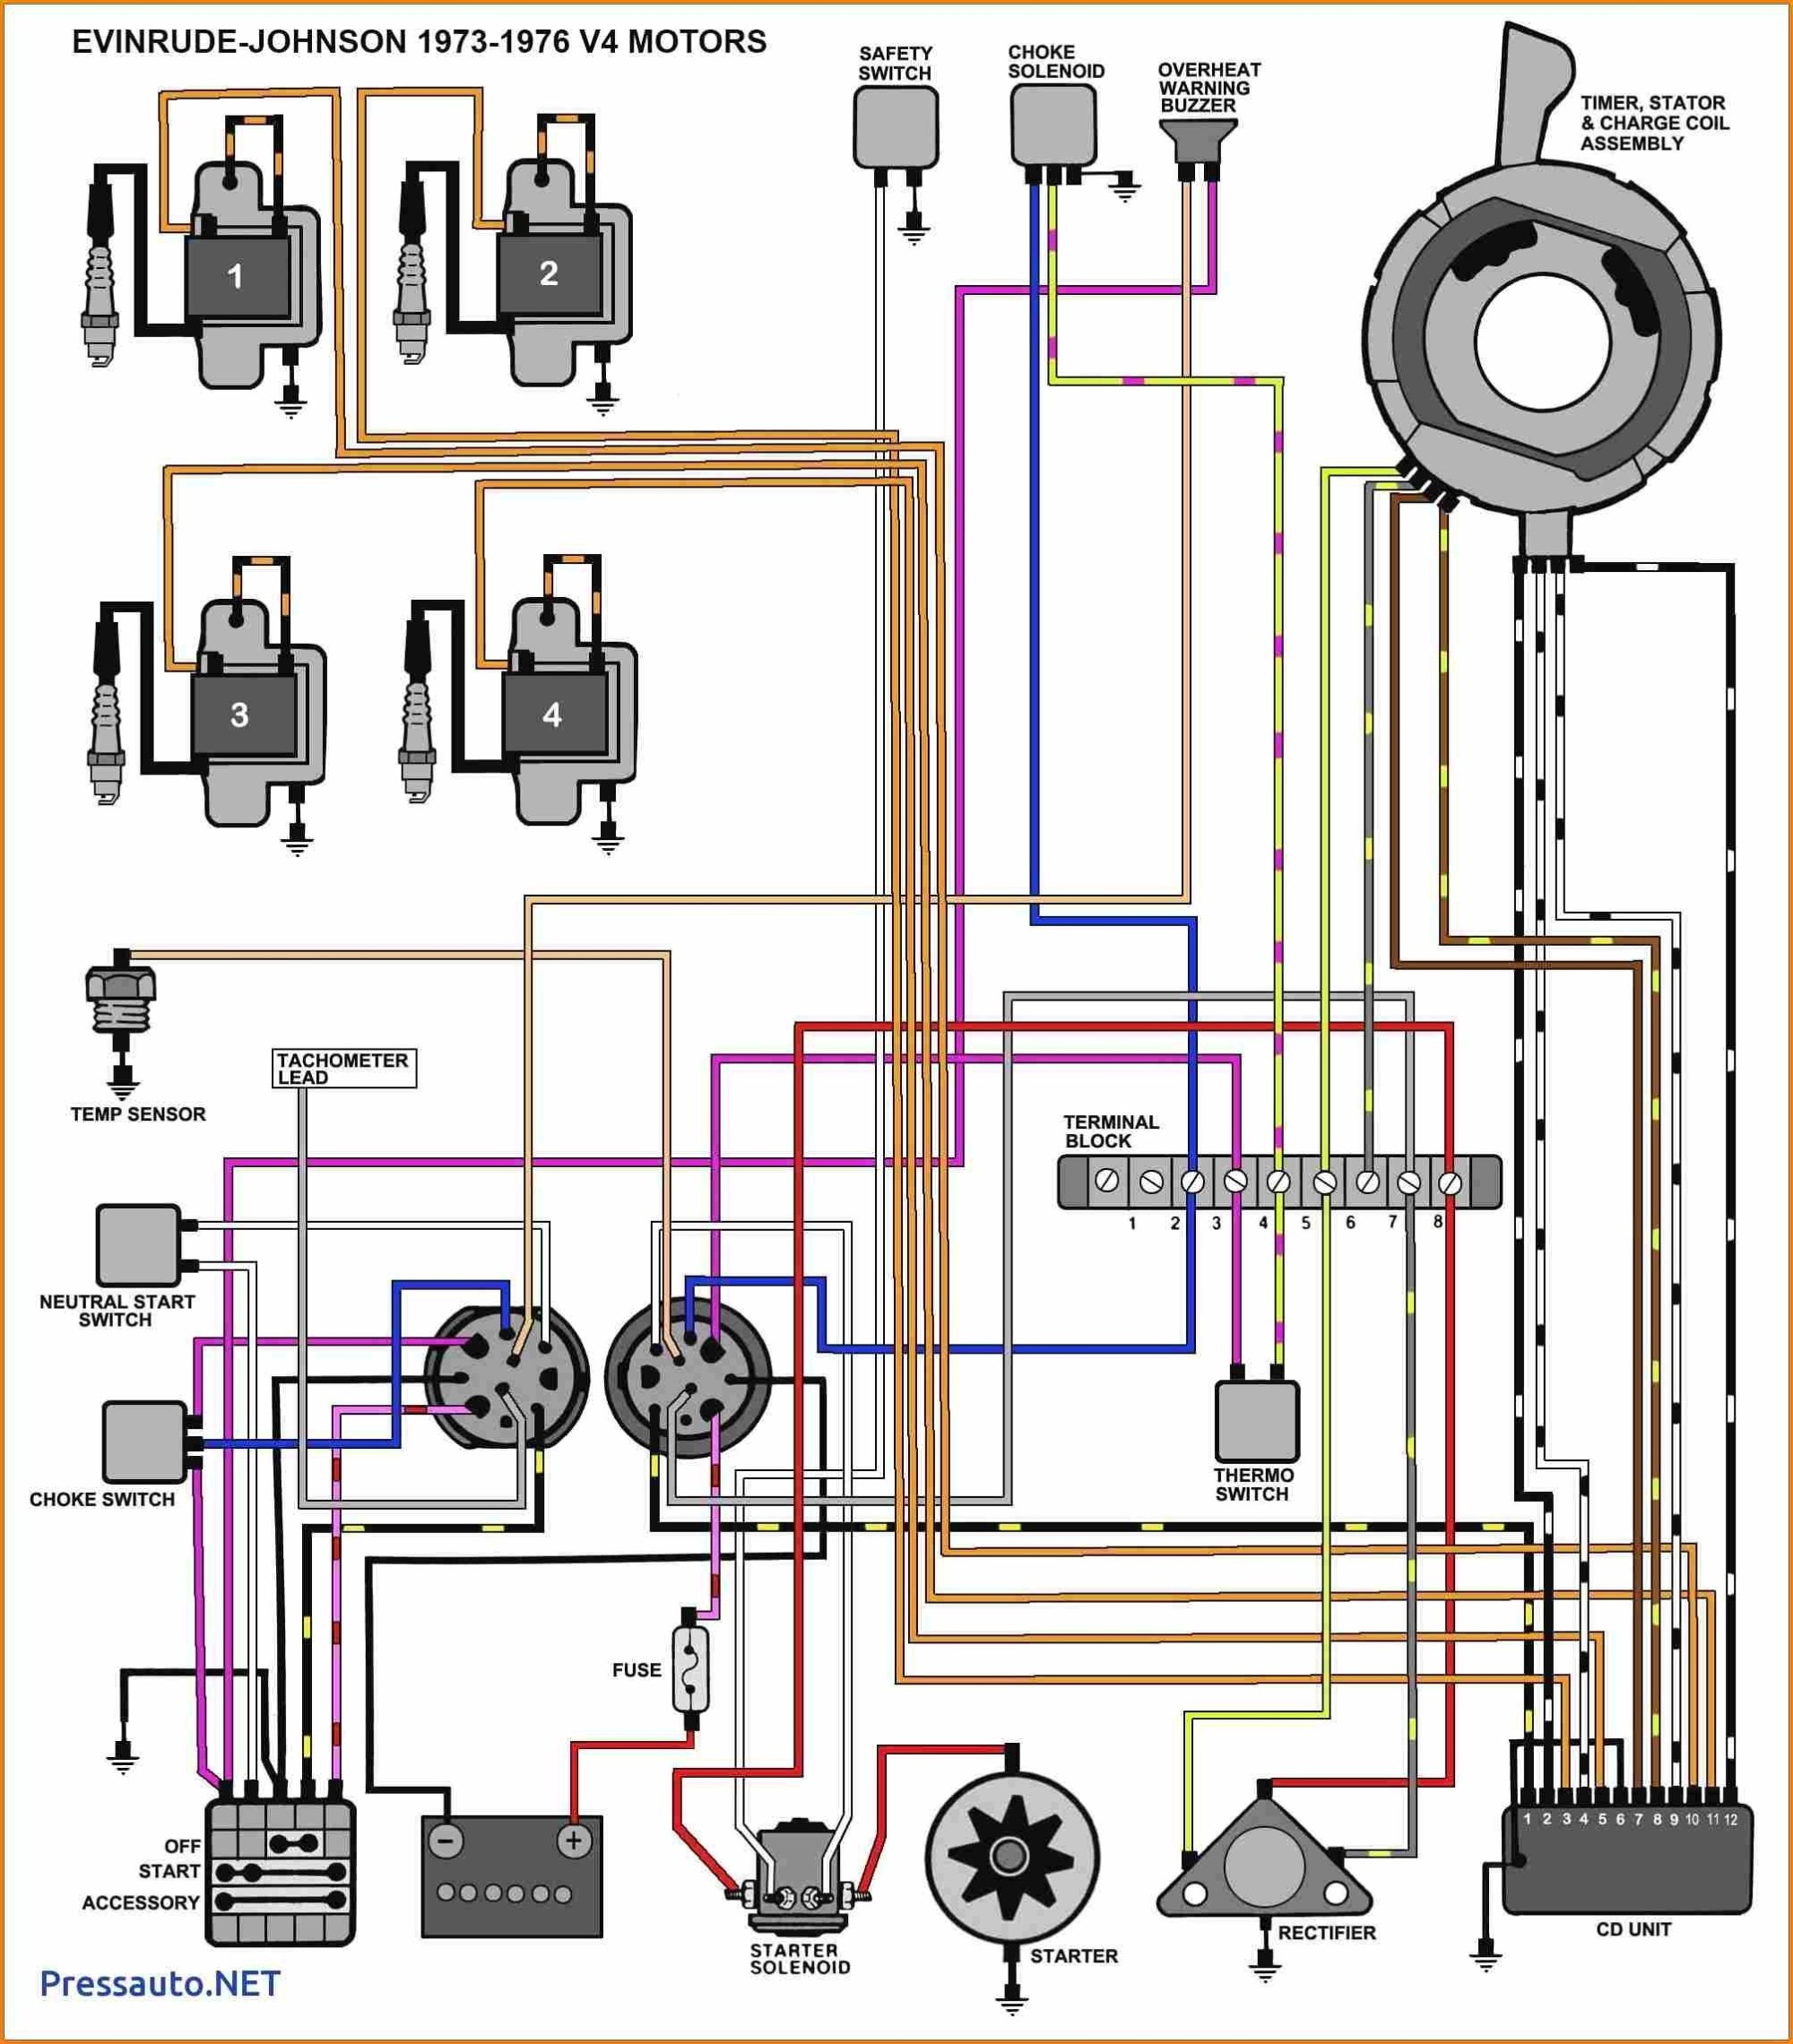 hight resolution of 76 evinrude 85 hp wiring diagram wiring diagram world 85 hp johnson wiring diagram free download